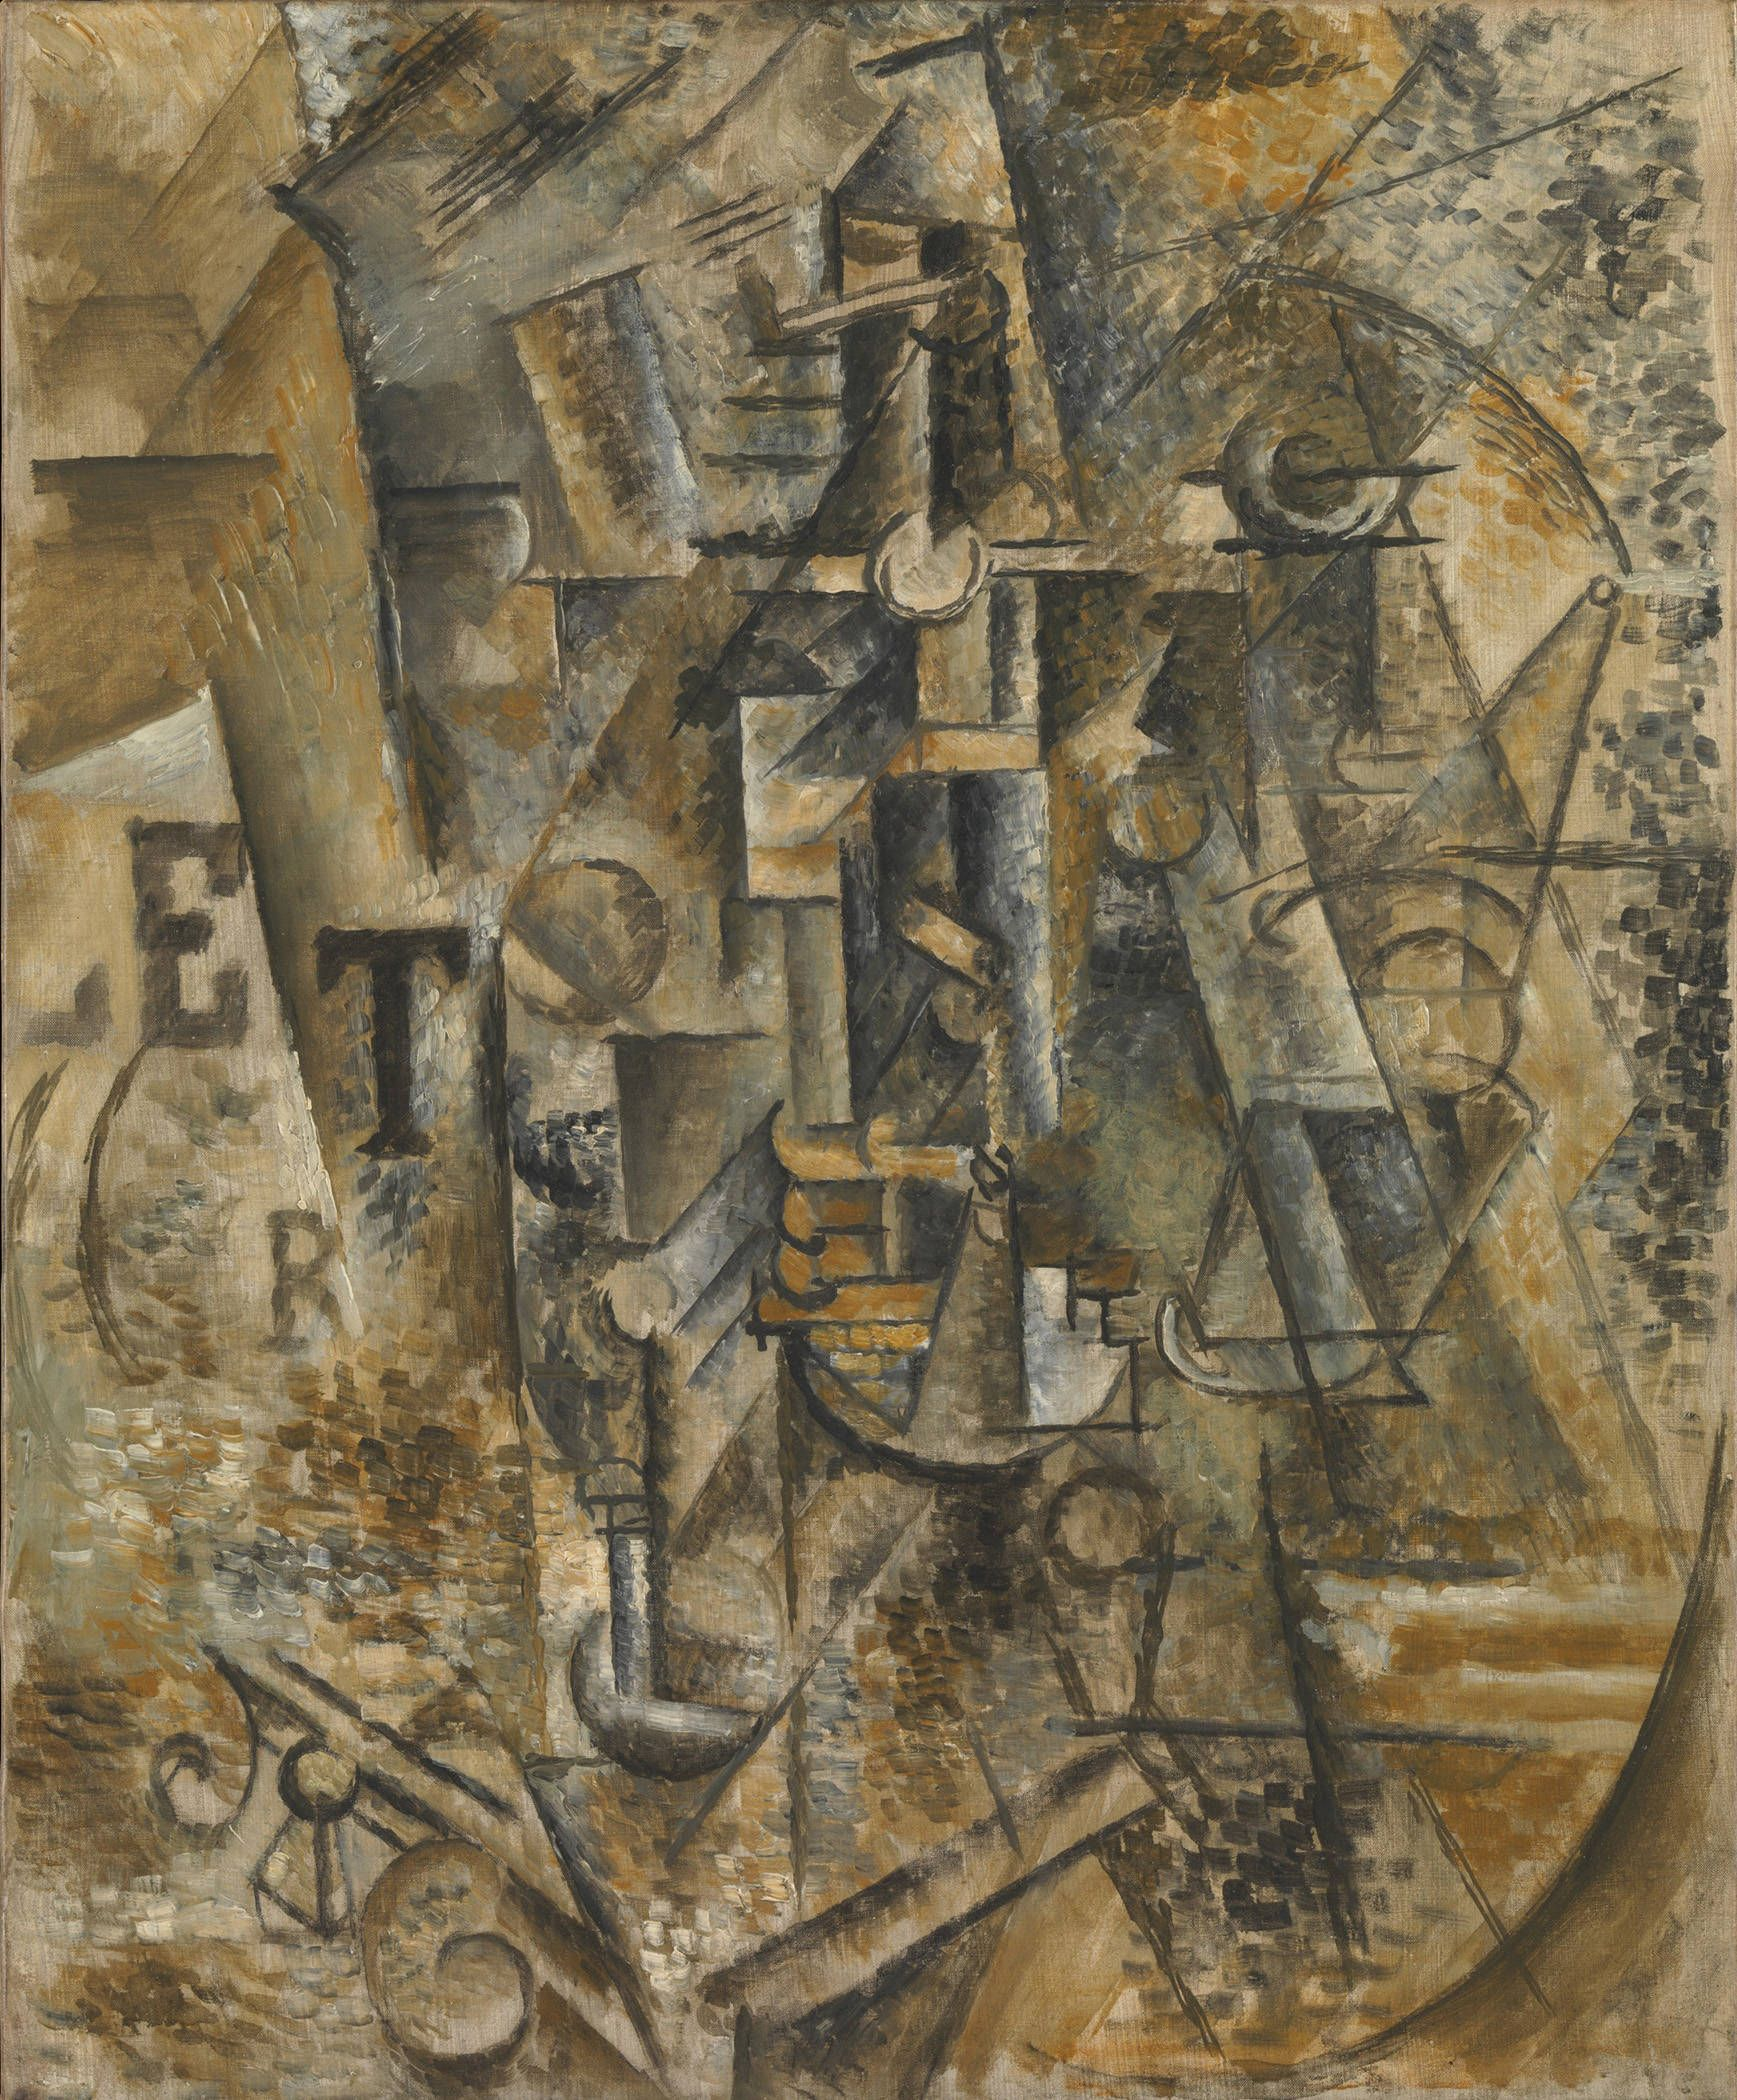 Pablo Picasso (Spanish, 18811973). Still Life with a